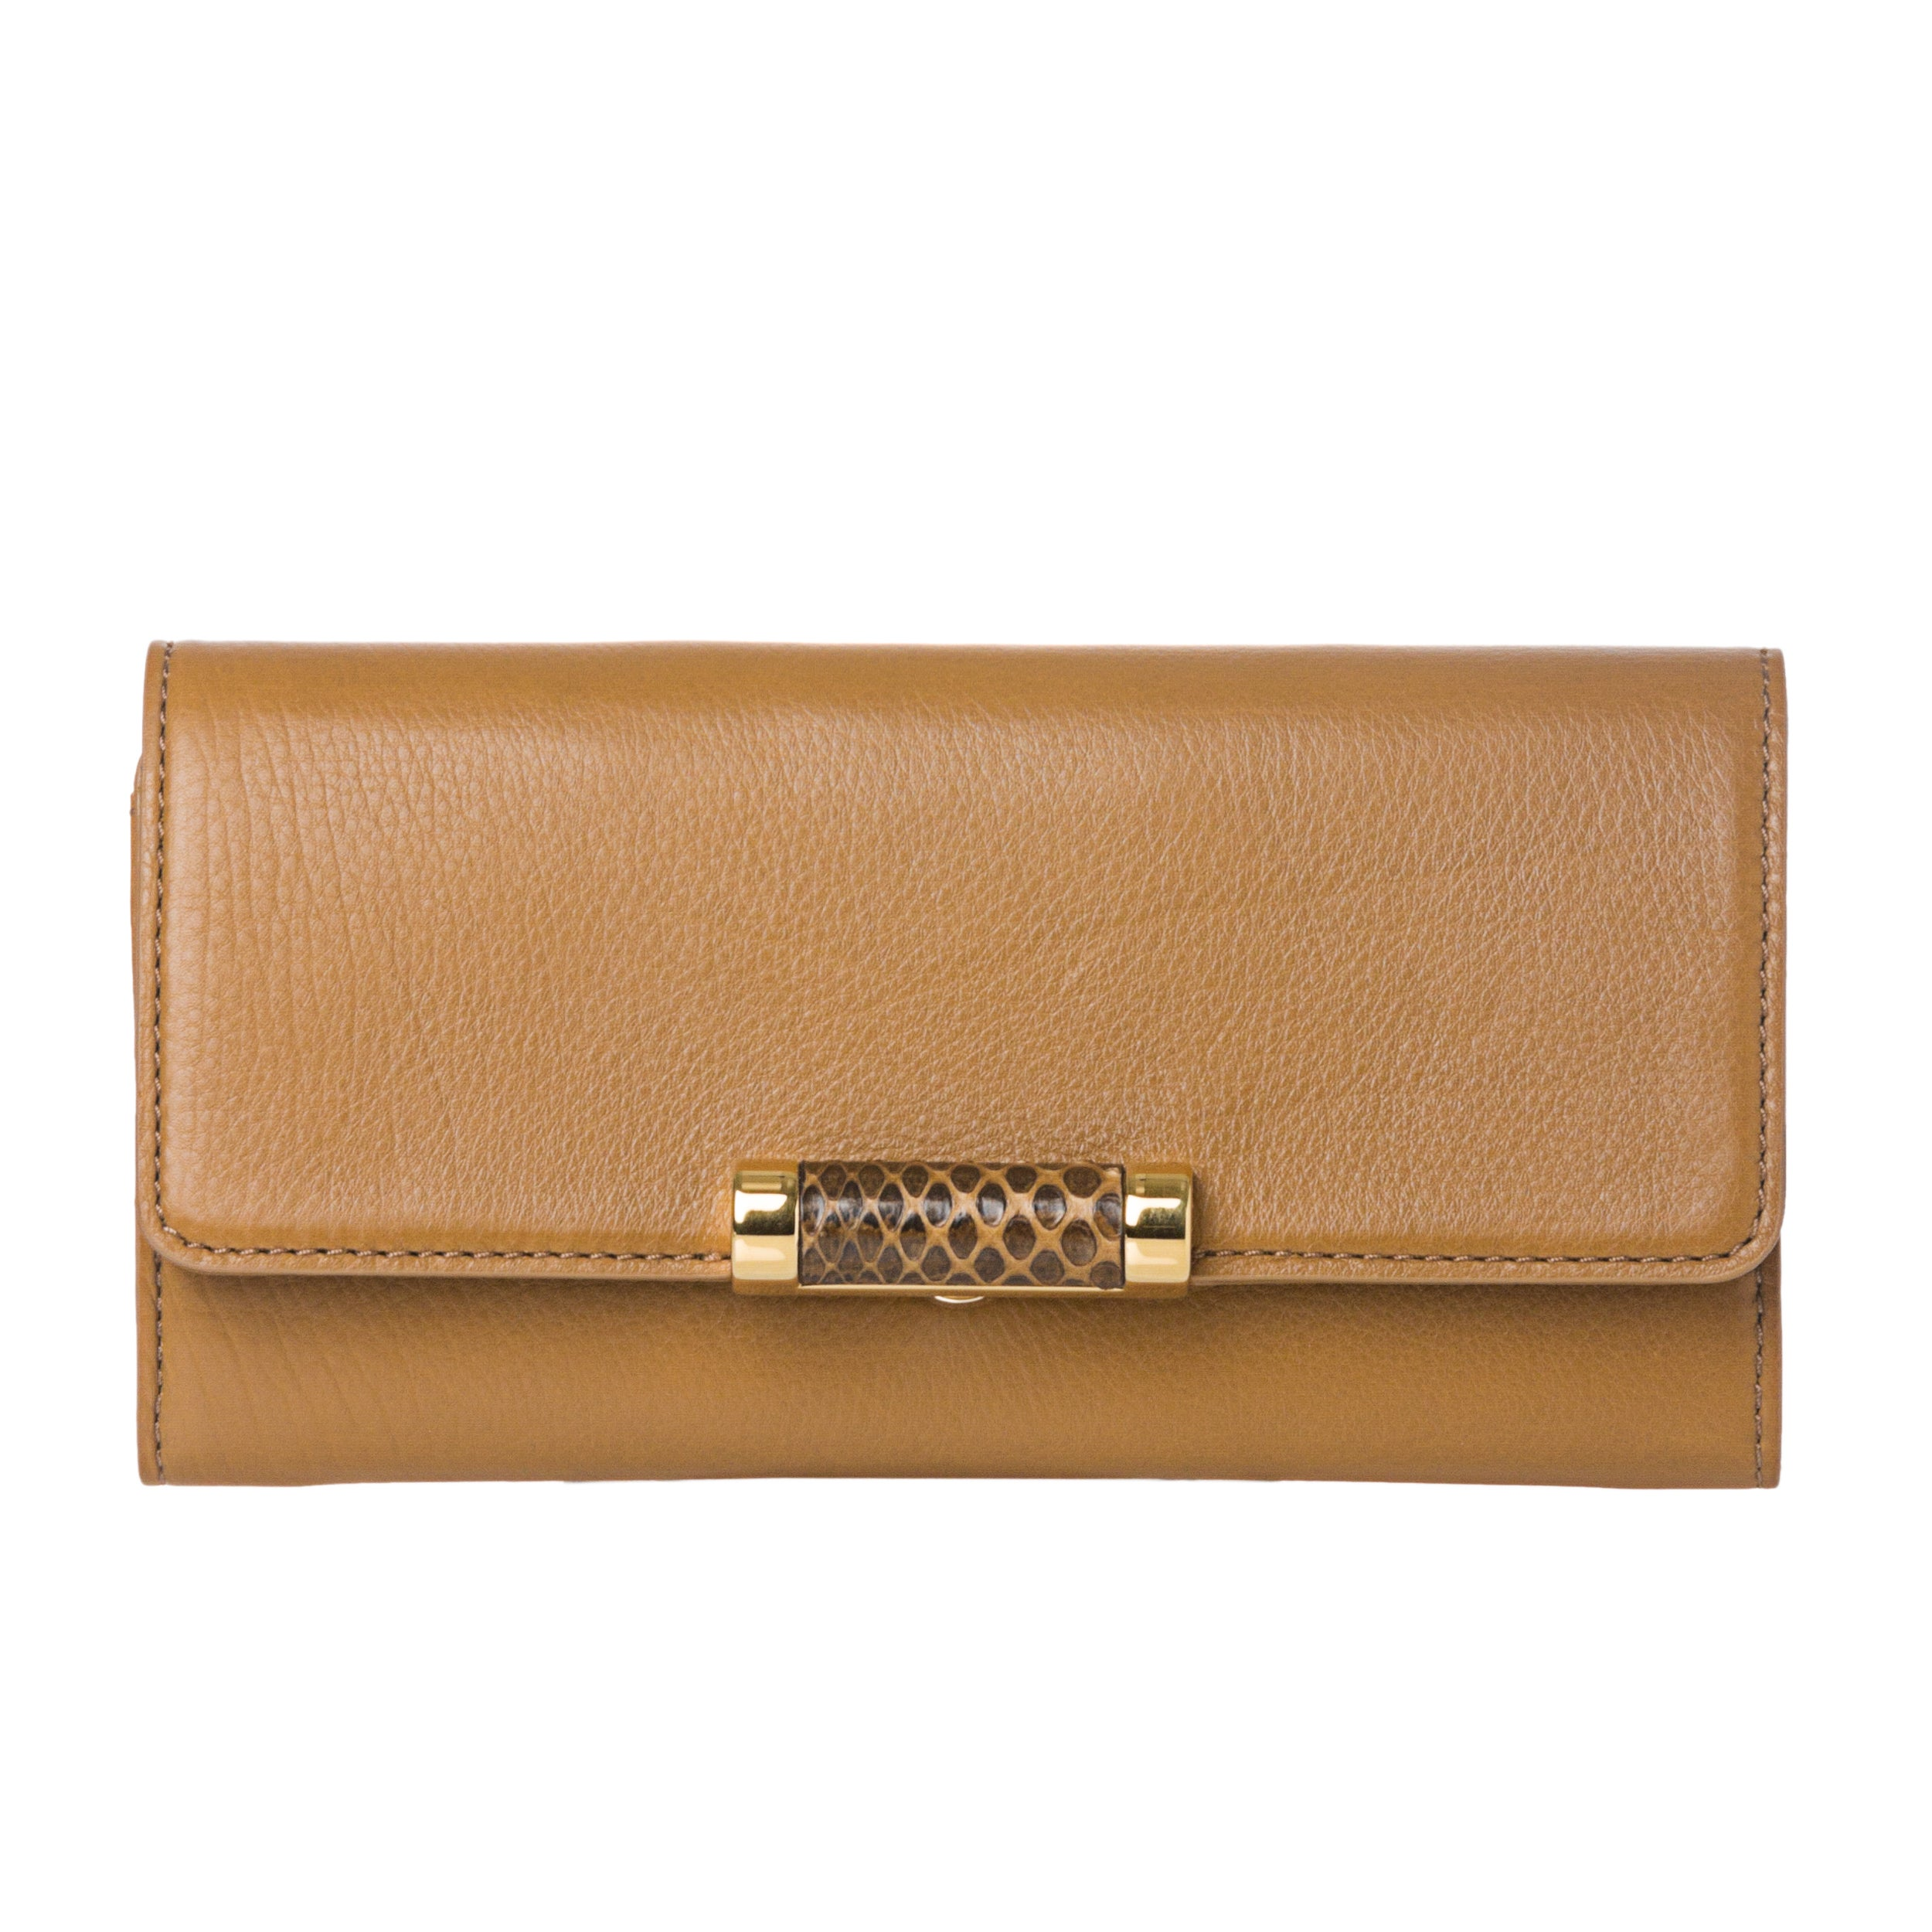 Michael Kors 'Tonne' Camel Leather Continental Wallet